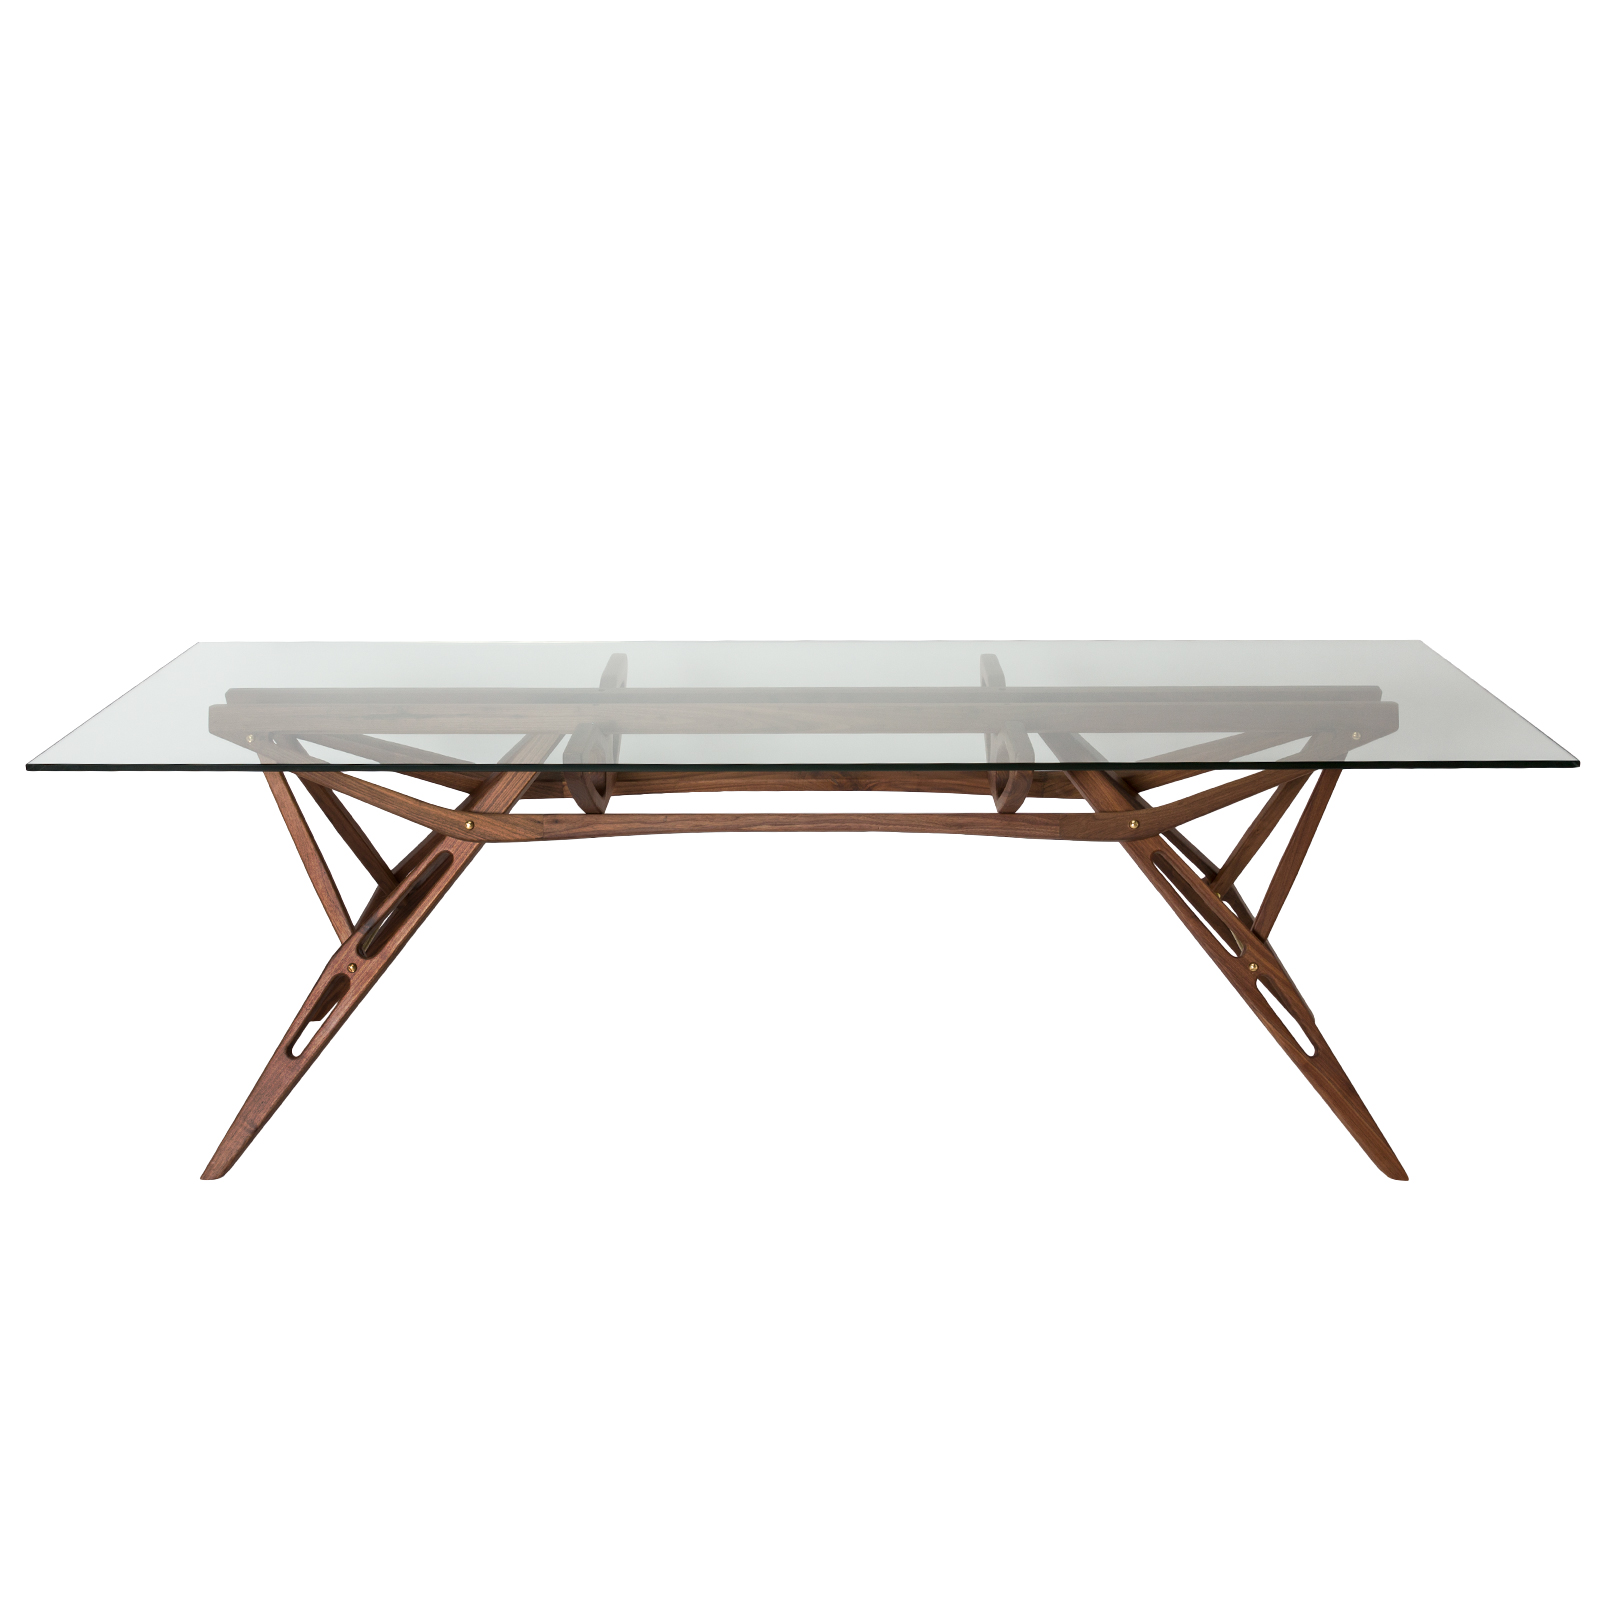 Dining table rental black dining table rentals event furniture rental amsterdam dining table - Rent dining room table ...